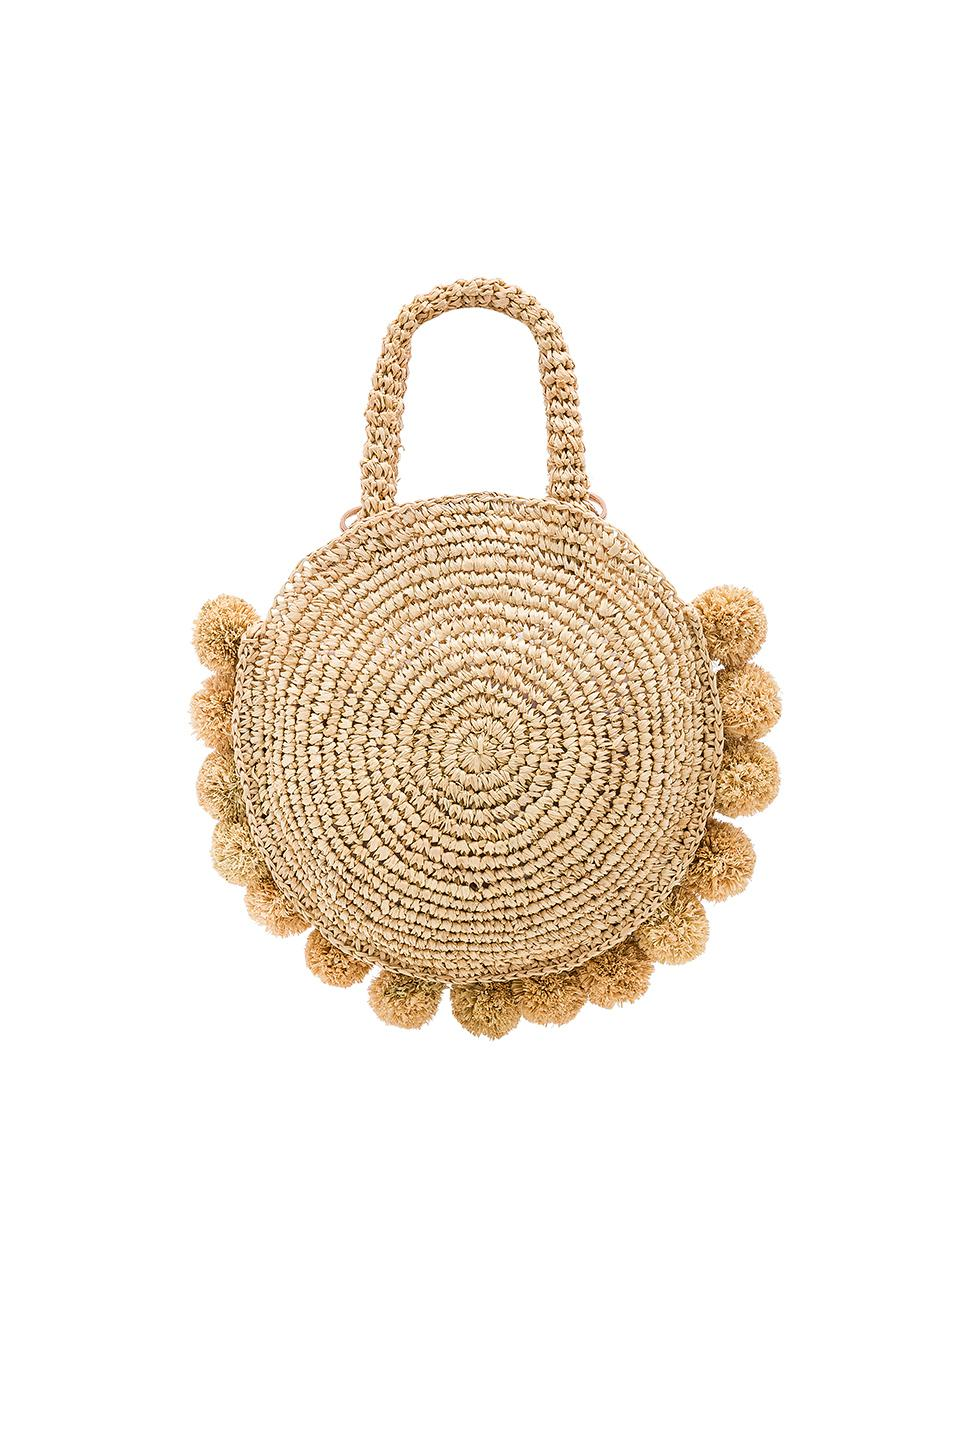 Loeffler Randall Leather Straw Circle Tote in Natural